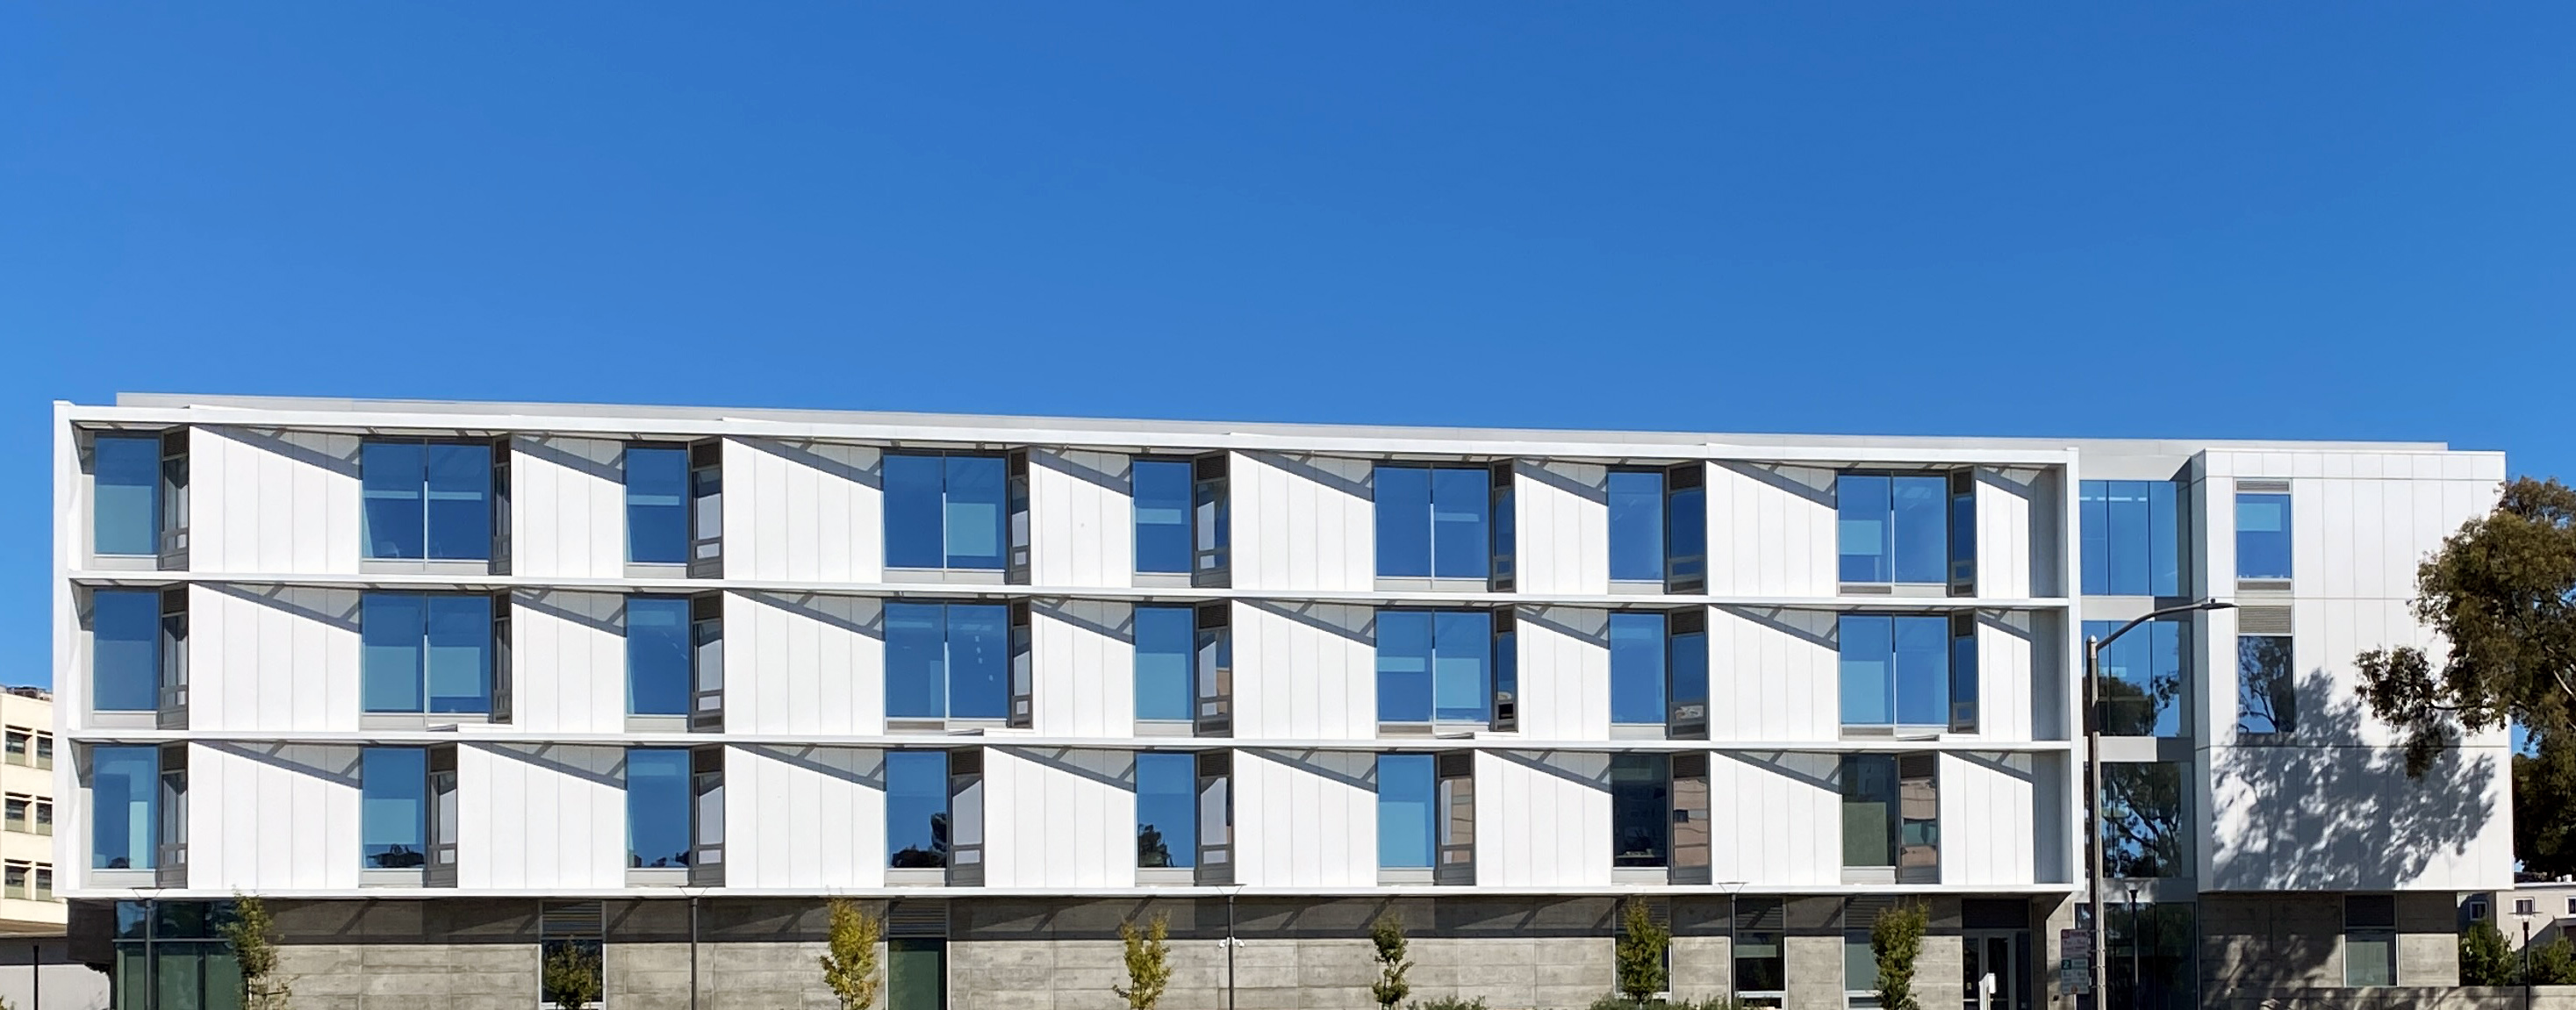 Marcus Hall exterior photo with bright blue sky mirrored in windows